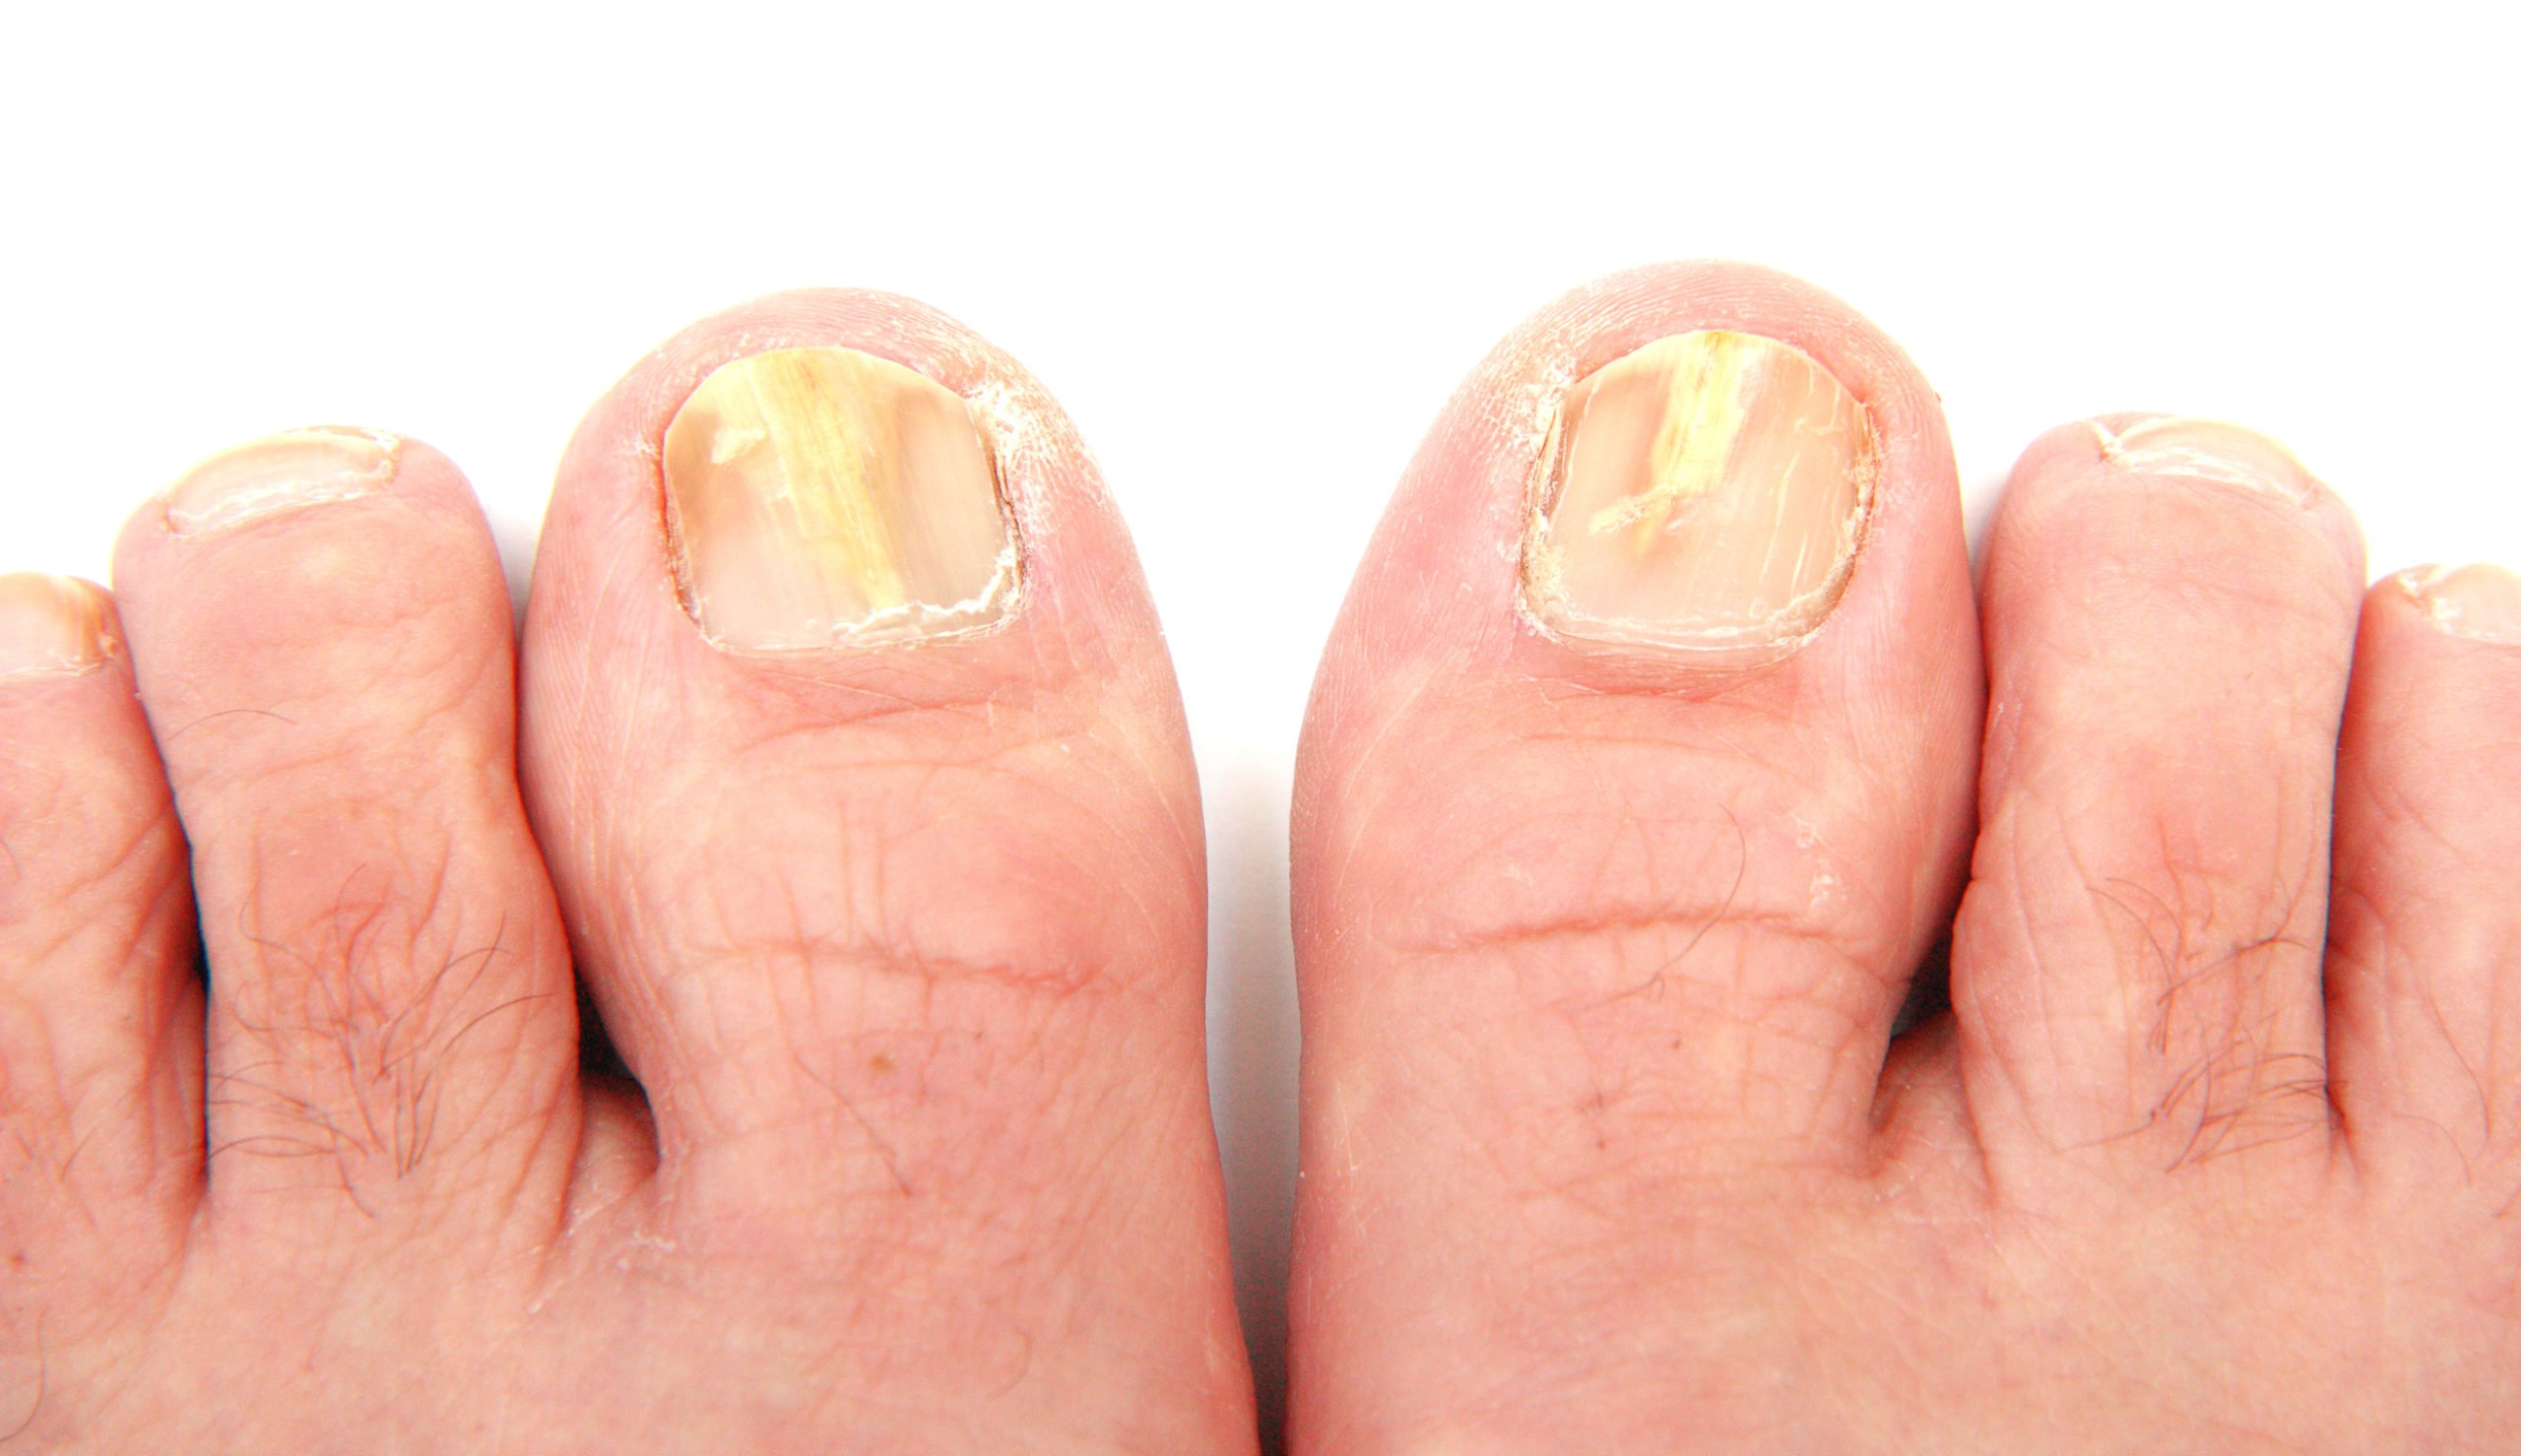 Nail fungus can be treated with turmeric and lemon juice Home